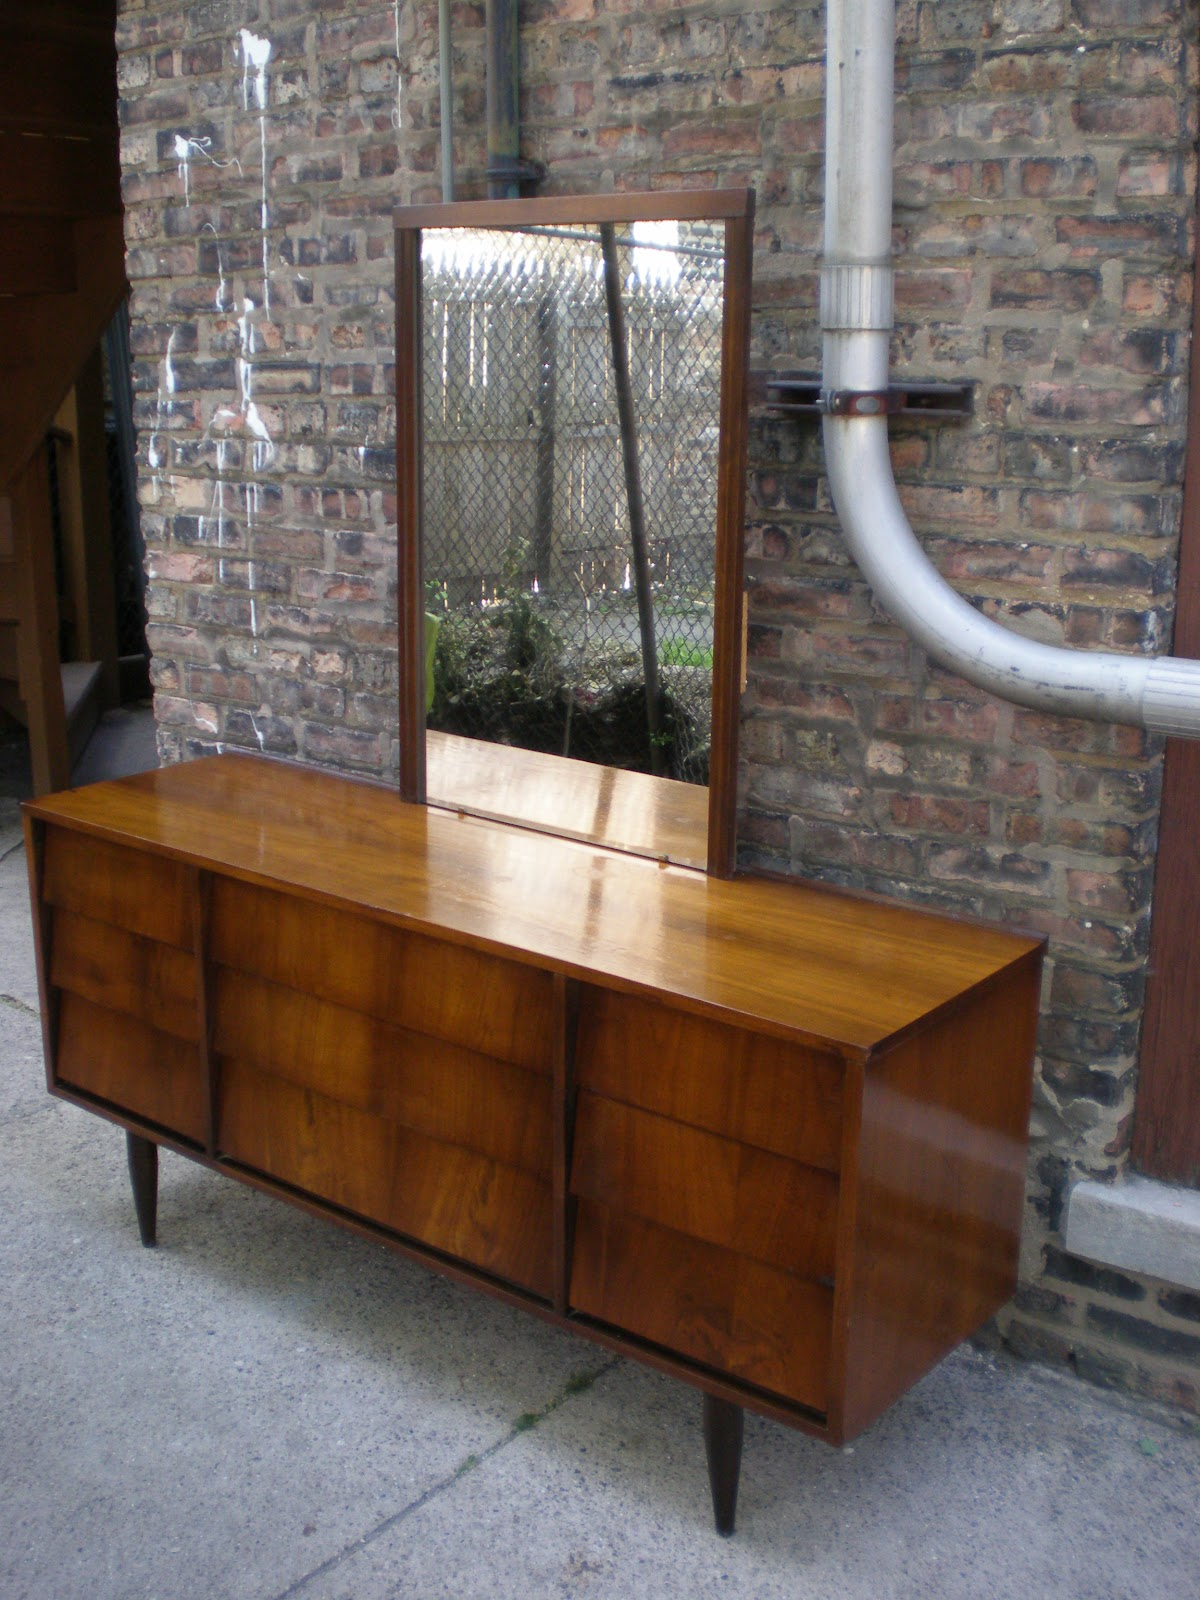 Beautiful Solid Wood 9 Drawer Lowboy With Detachable Mirror Dated 1969 This Dresser Is In Great Condition Top Of Does Have Some Surface Ware